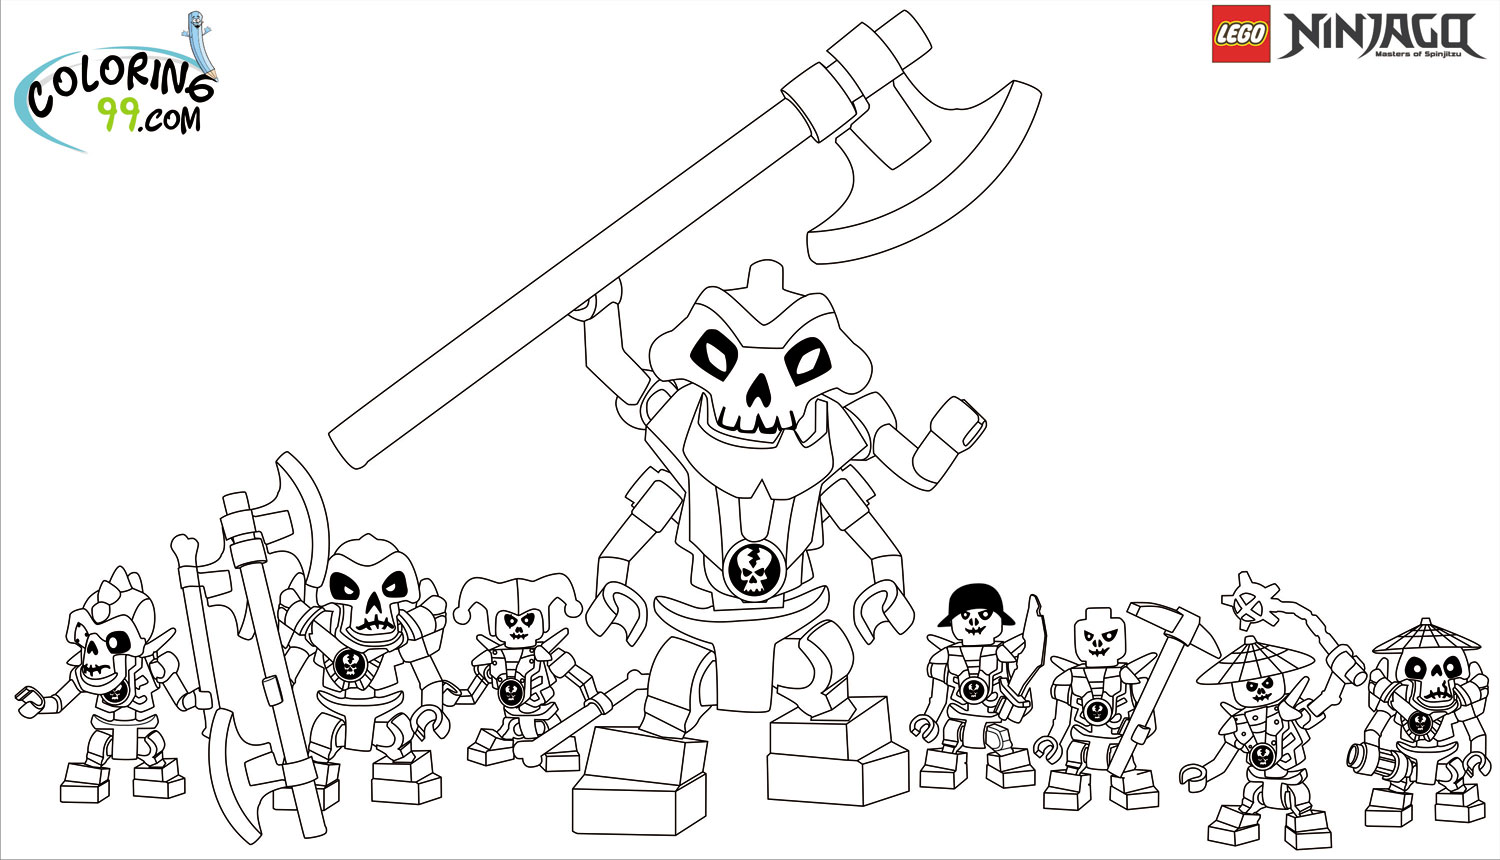 LEGO Ninjago Skulkin Coloring Pages | Team colors